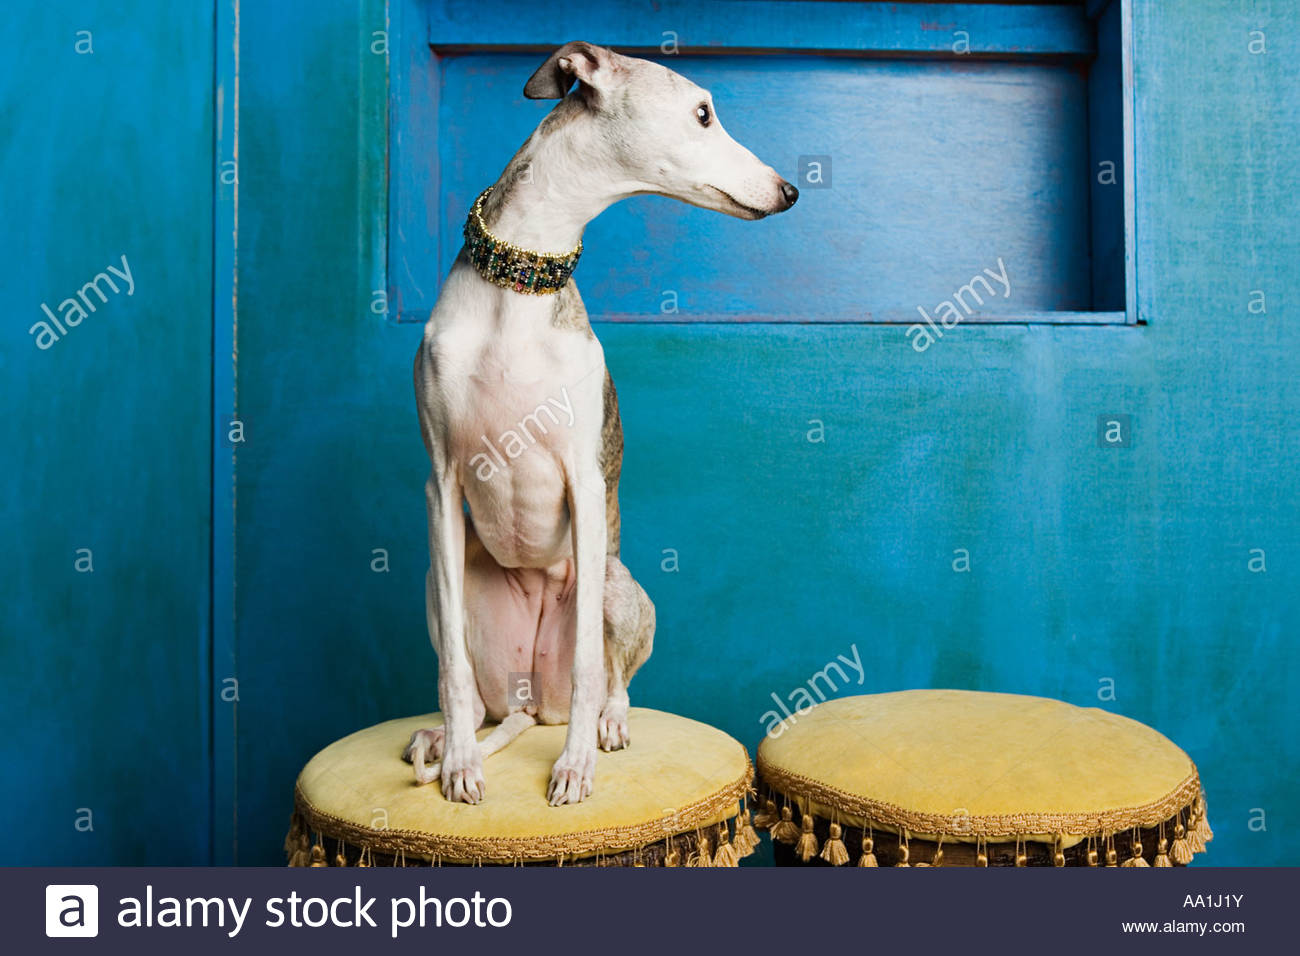 Whippet on a stool - Stock Image